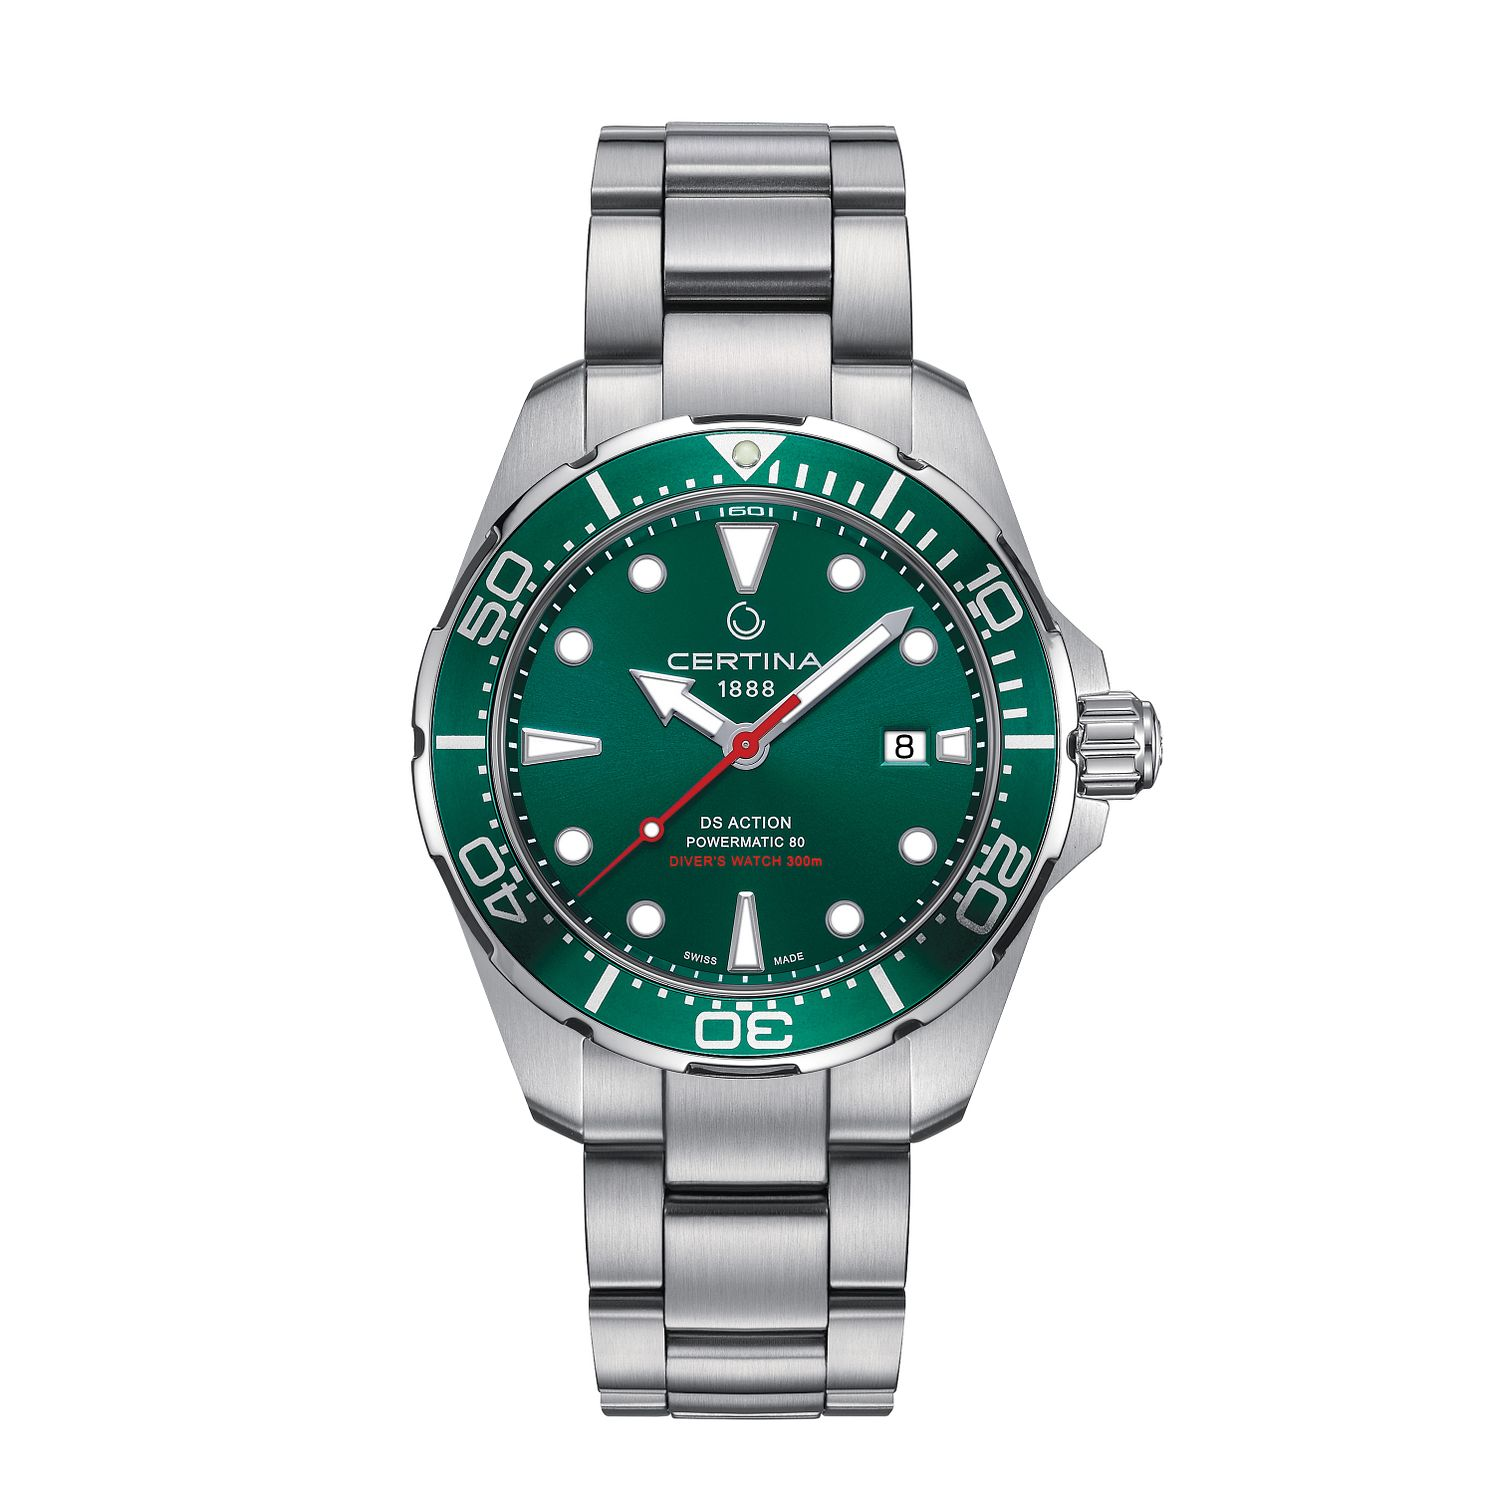 Certina Ds Action Powermatic 80 Men's Green Dial Watch - Product number 5868327